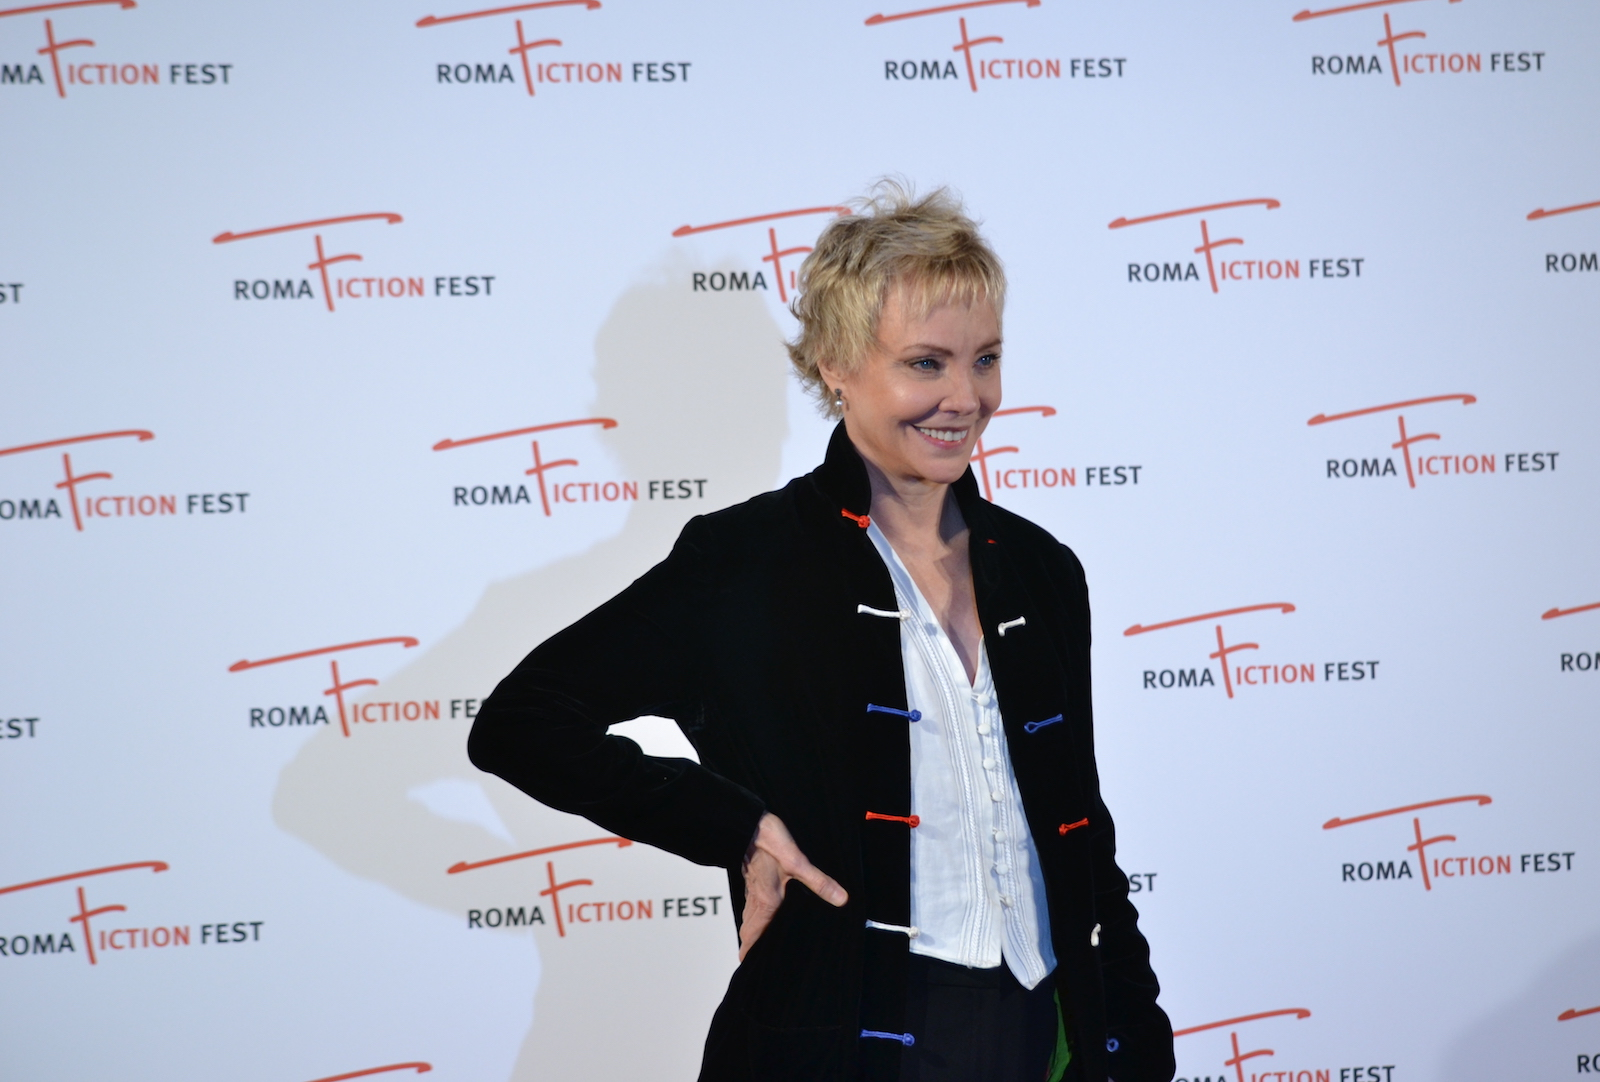 Roma Fiction Fest 2015: Carole André posa sul red carpet di Sandokan